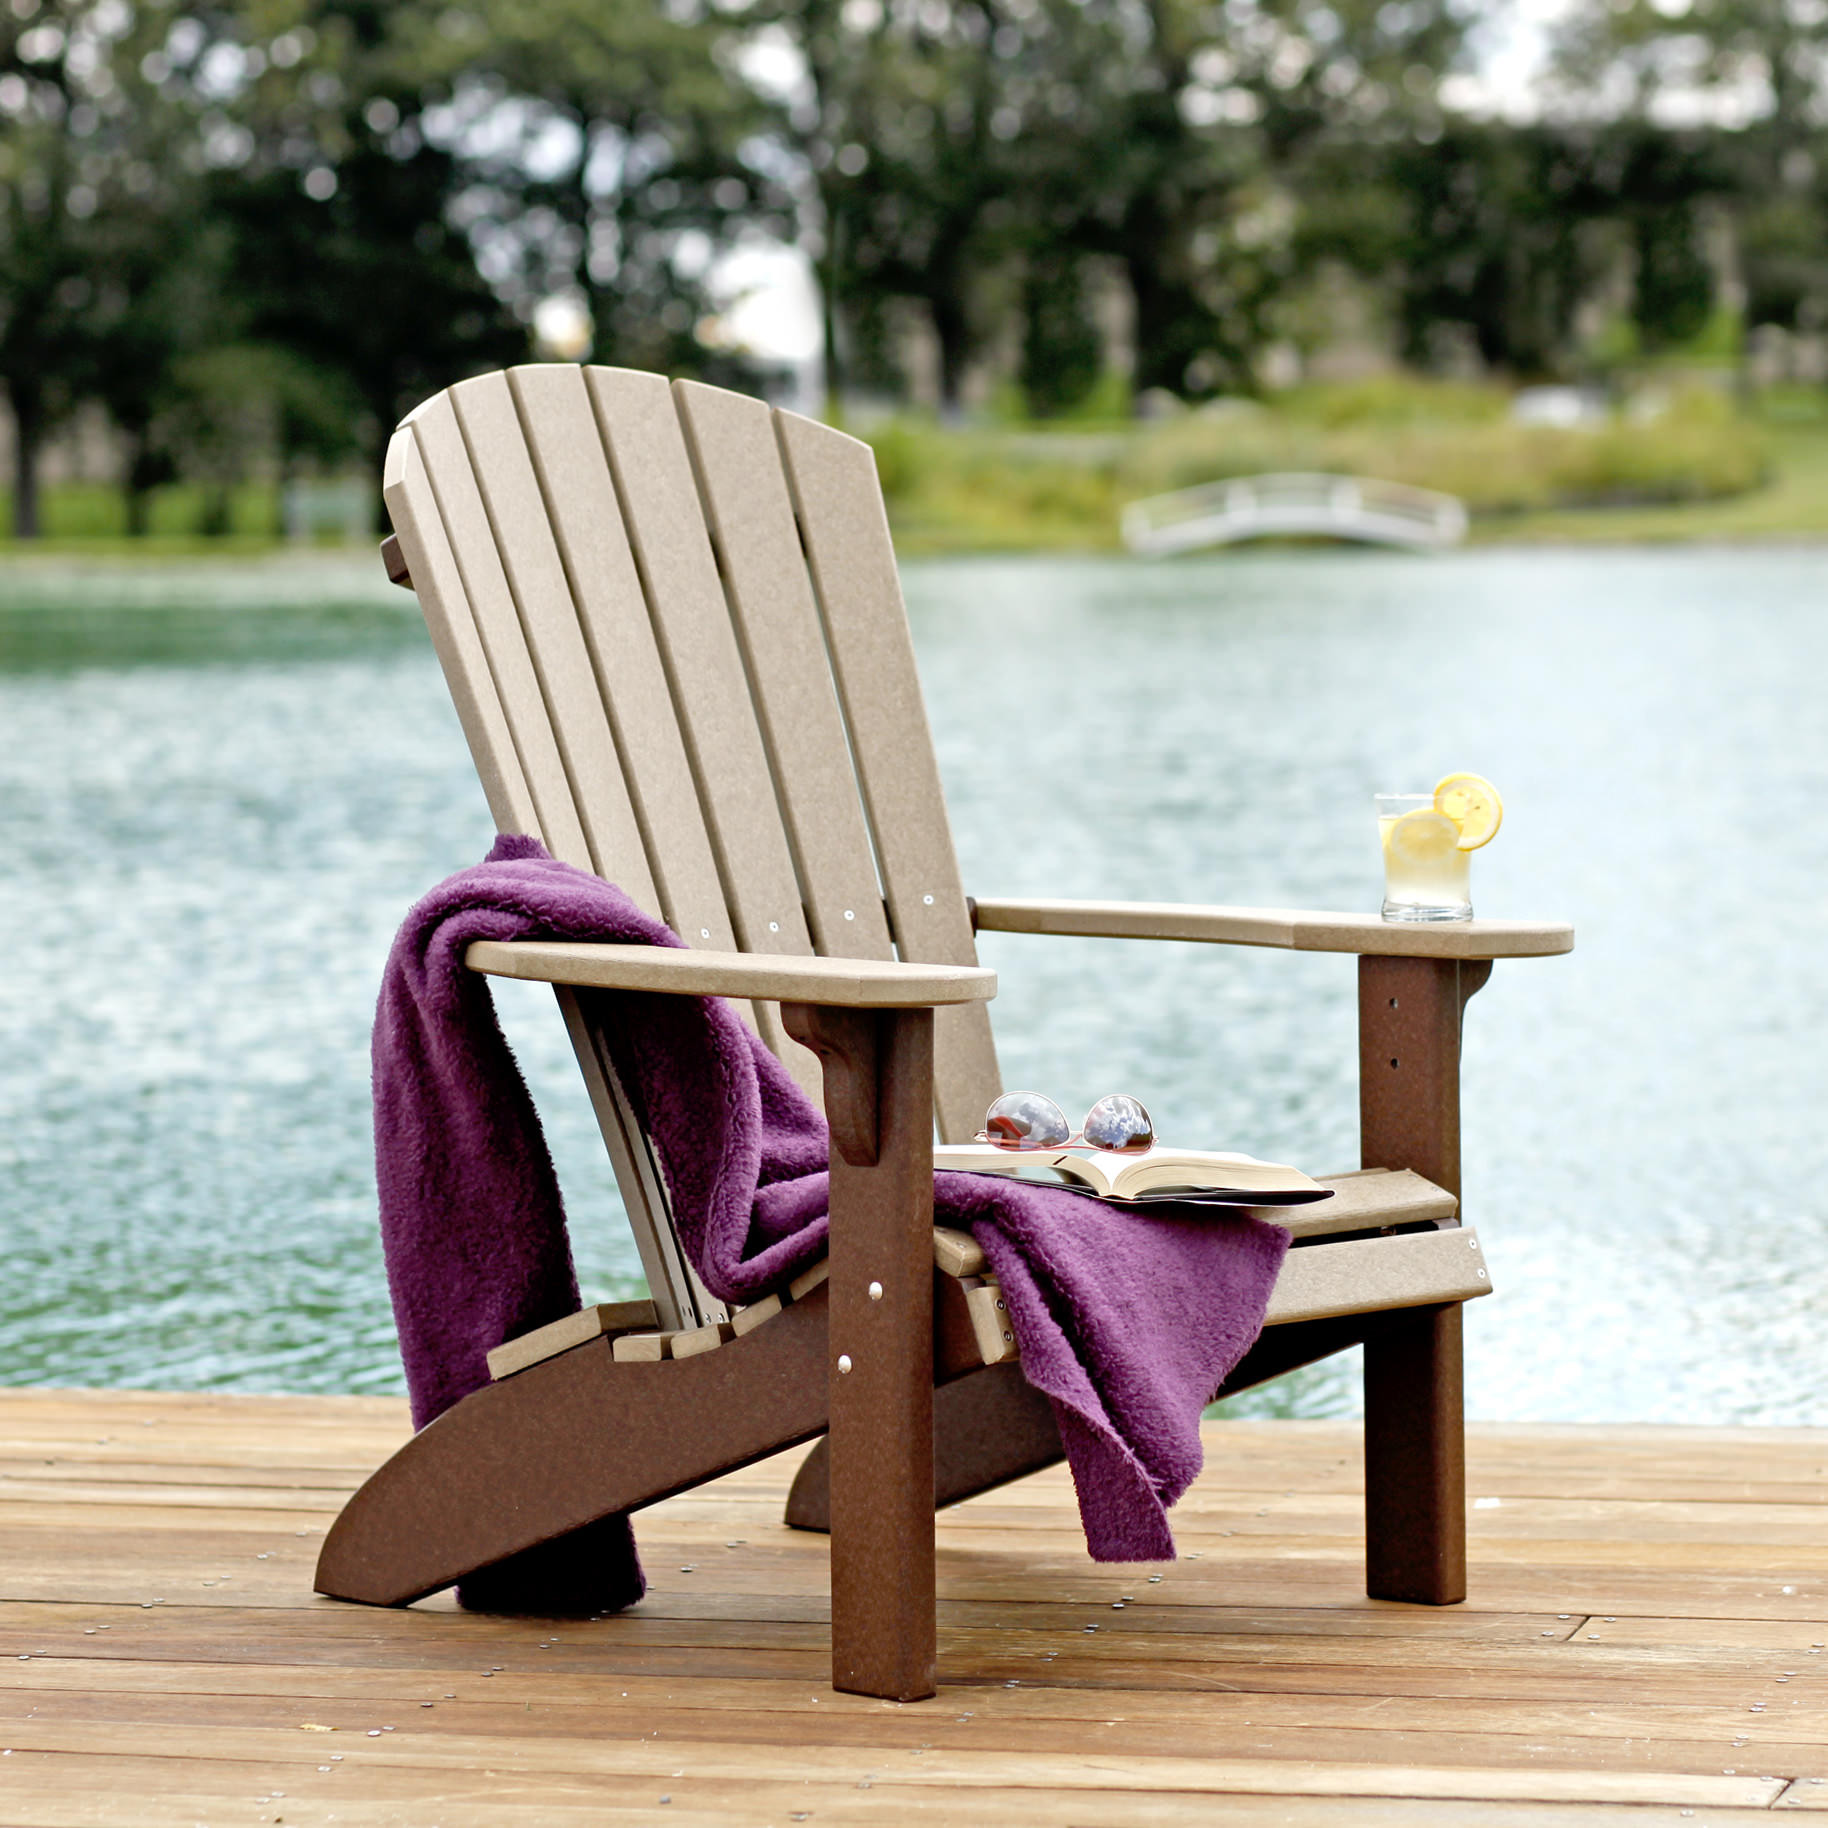 Sightly Amish Poly Adirondack Chair Shop Poly Lumber Polywood Poly Lumber Adirondack Chairs Polywood Adirondack Chairs Target Polywood Adirondack Chairs Costco houzz 01 Polywood Adirondack Chairs